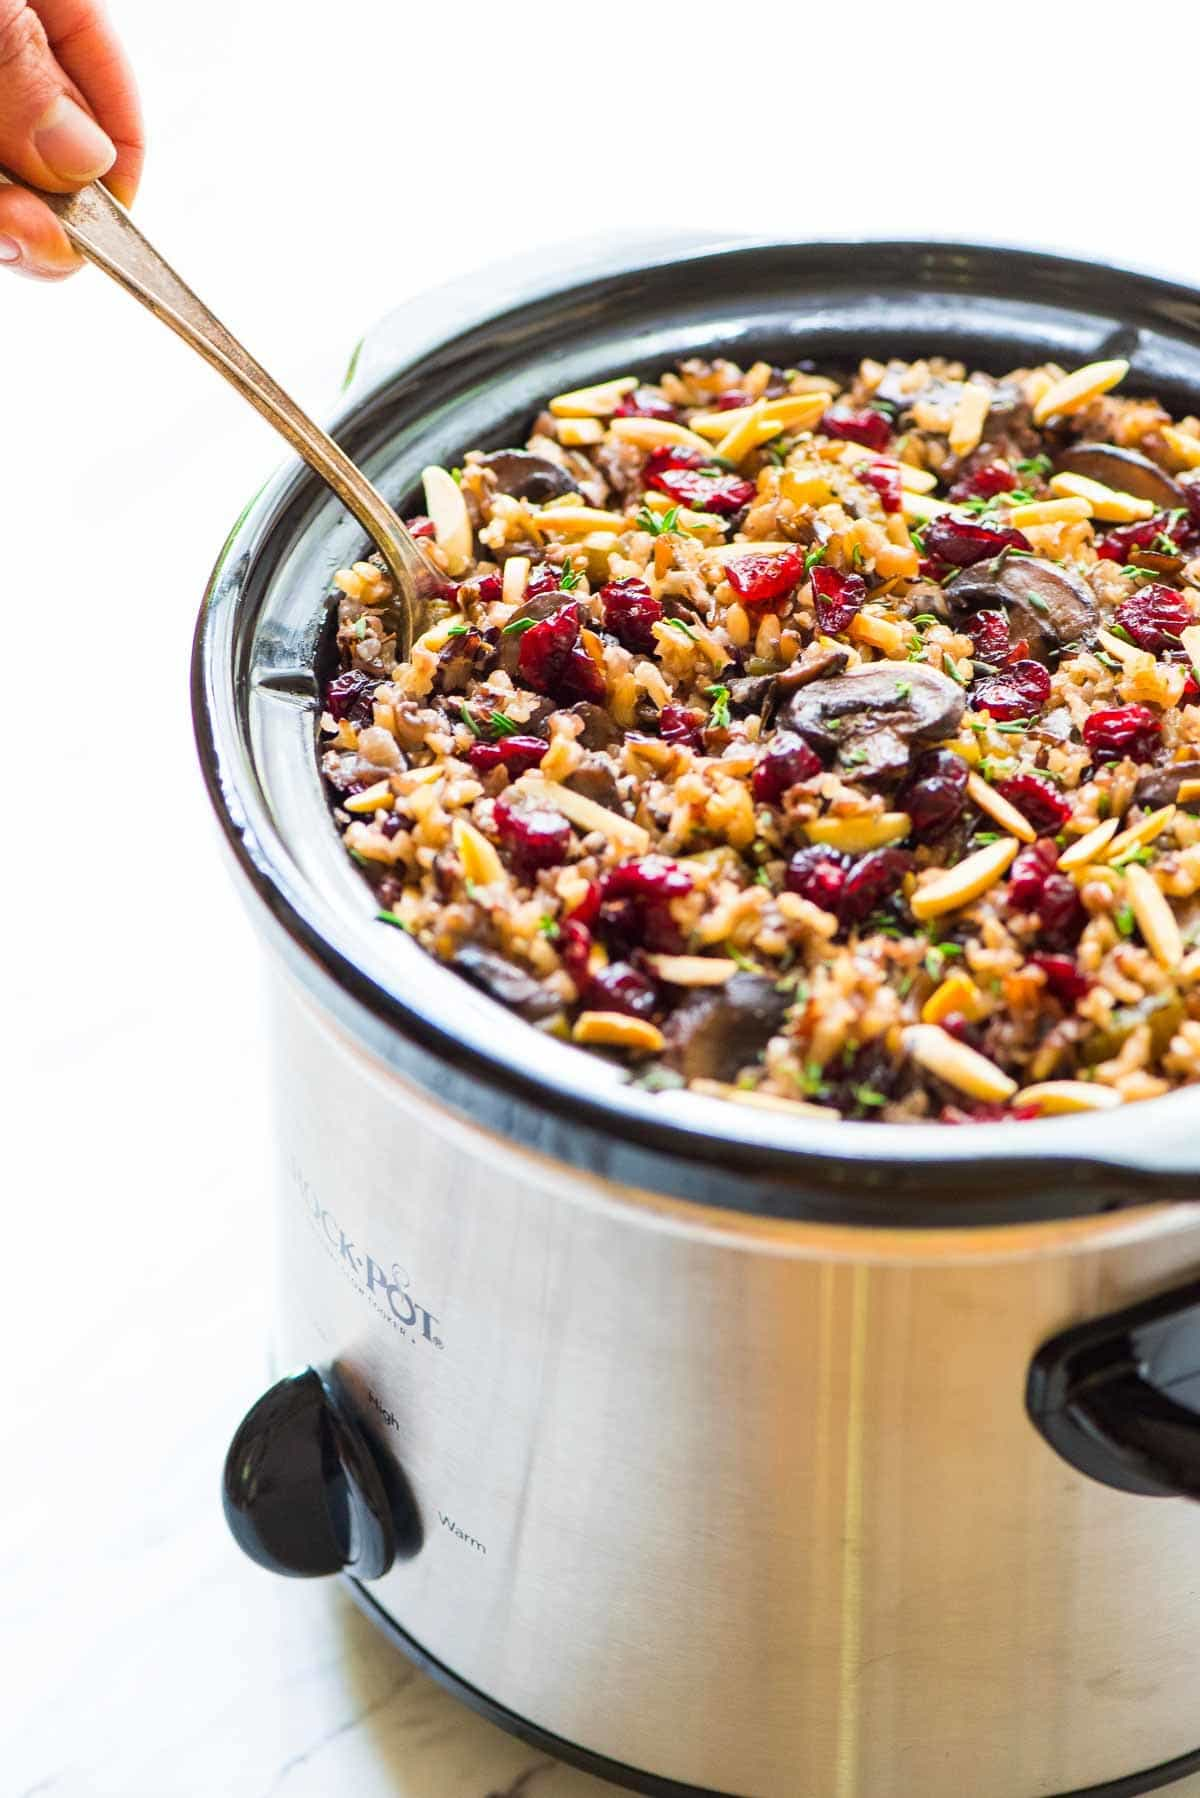 The BEST gluten free stuffing: Crockpot Stuffing with Wild Rice, Cranberries and Almonds. Easy slow cooker recipe that our whole family loved! Can be made ahead and frees up the oven, so it's the perfect holiday and Thanksgiving side dish. {vegan, gluten free} Recipe at wellplated.com   @wellplated